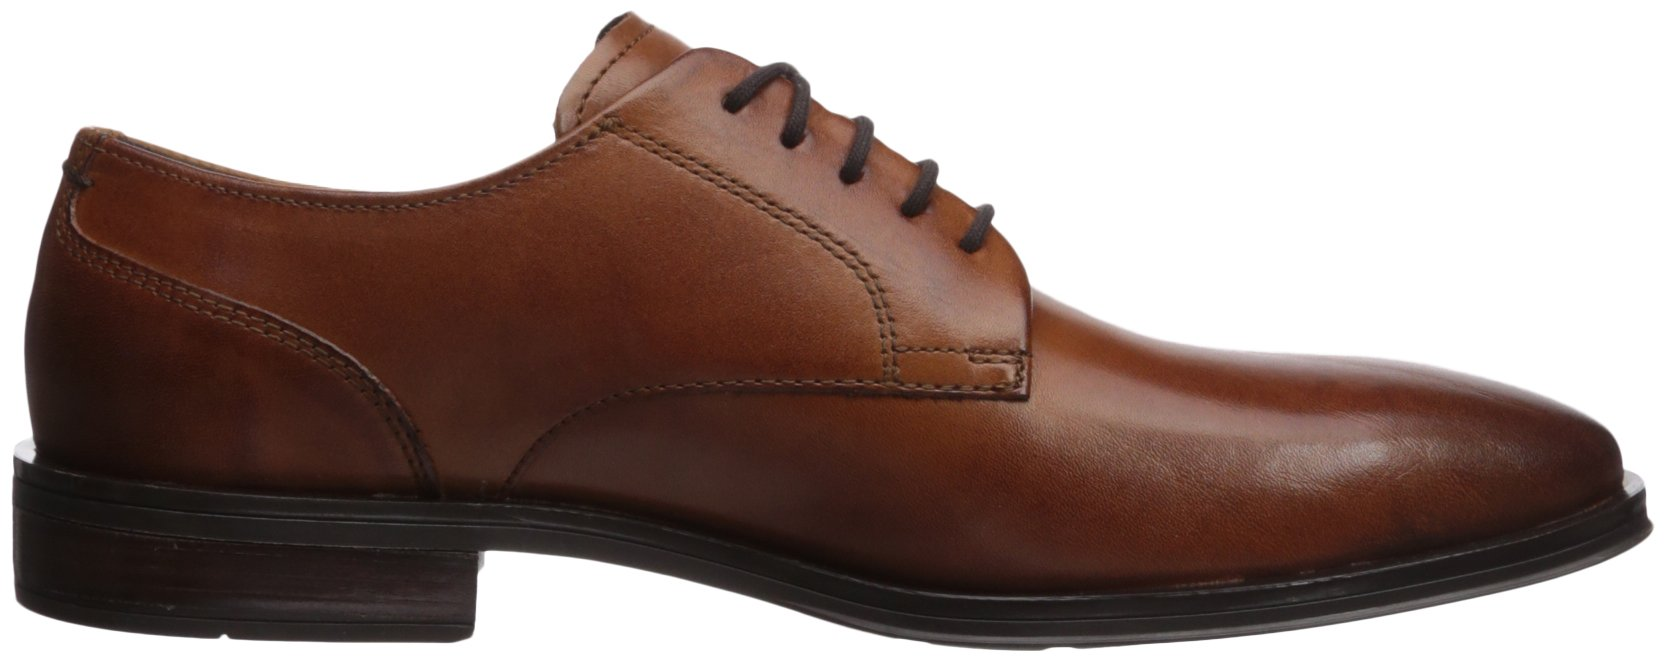 Cole Haan Men's Dawes Grand Plain Toe Oxford, British Tan, 11 Medium US by Cole Haan (Image #6)